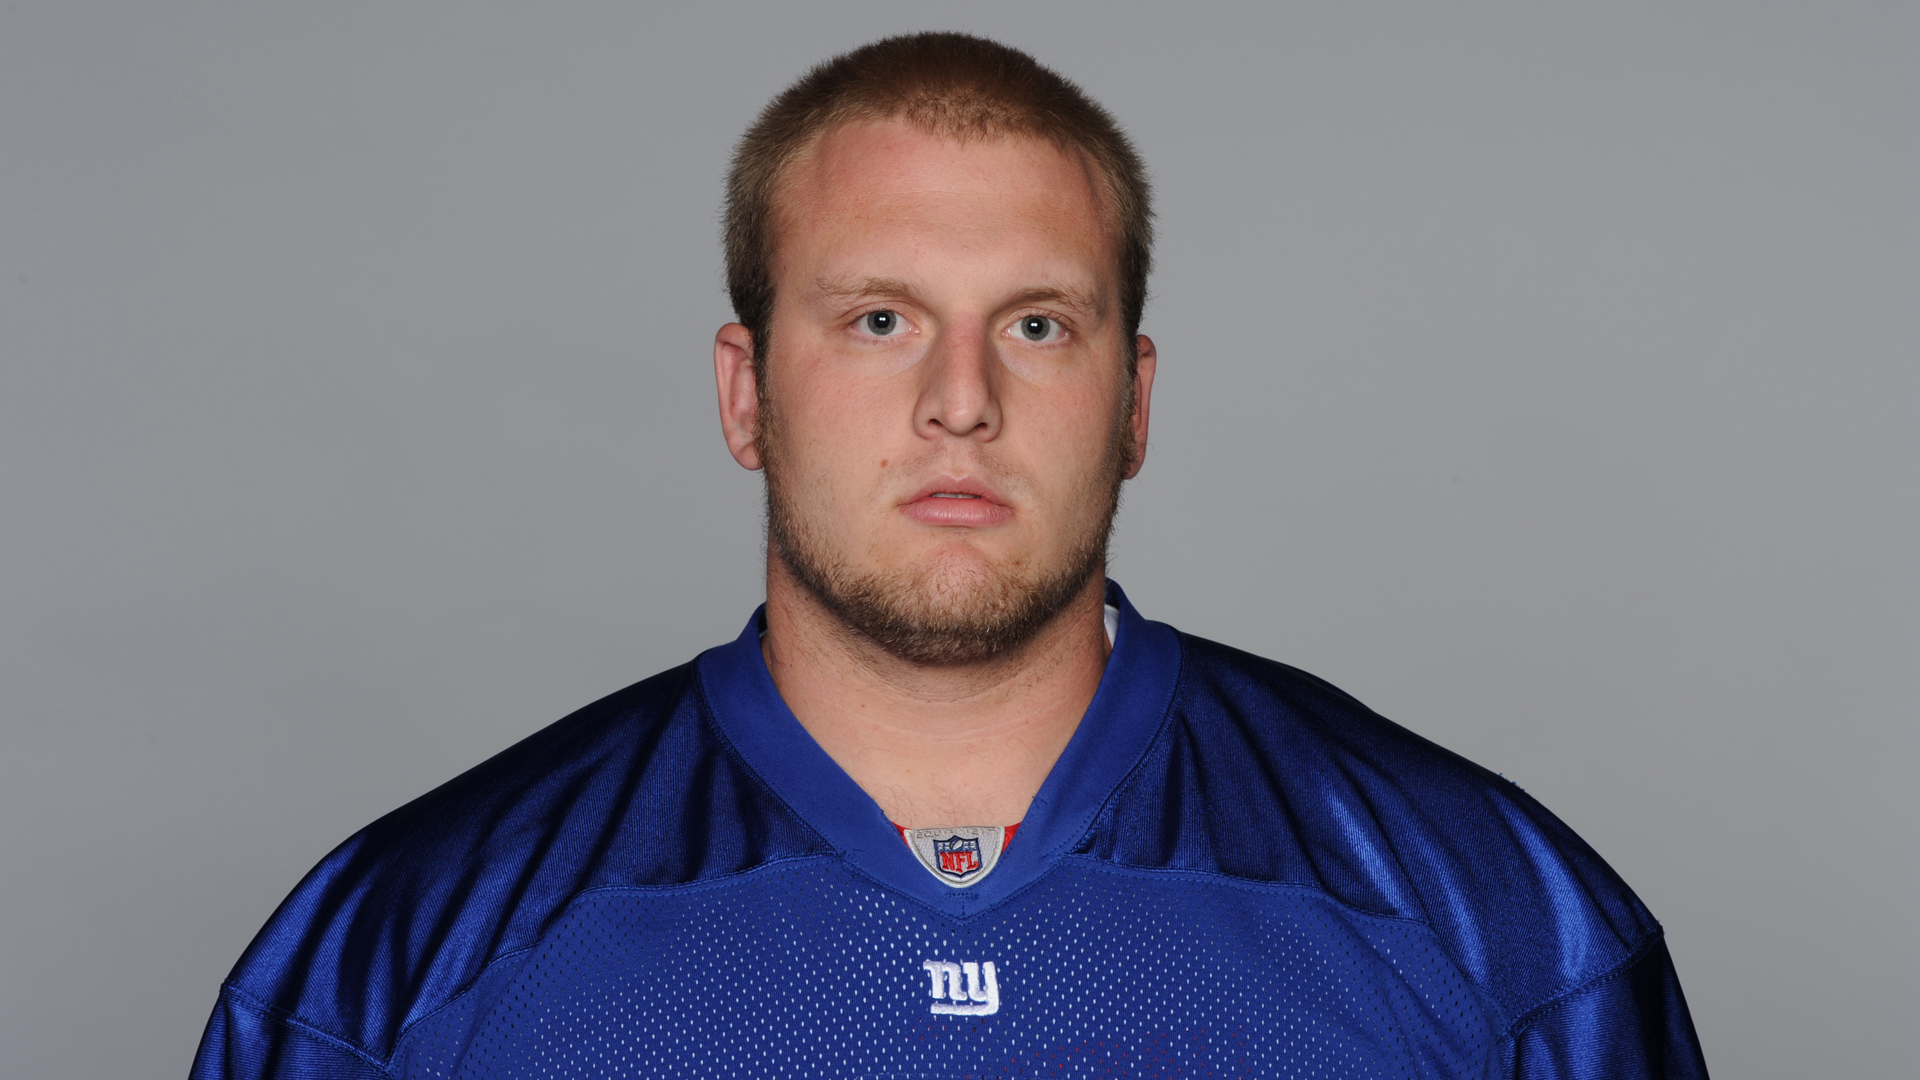 Mitch Petrus is seen in a 2010 New York Giants team photo. (Credit: AP via Getty Images)